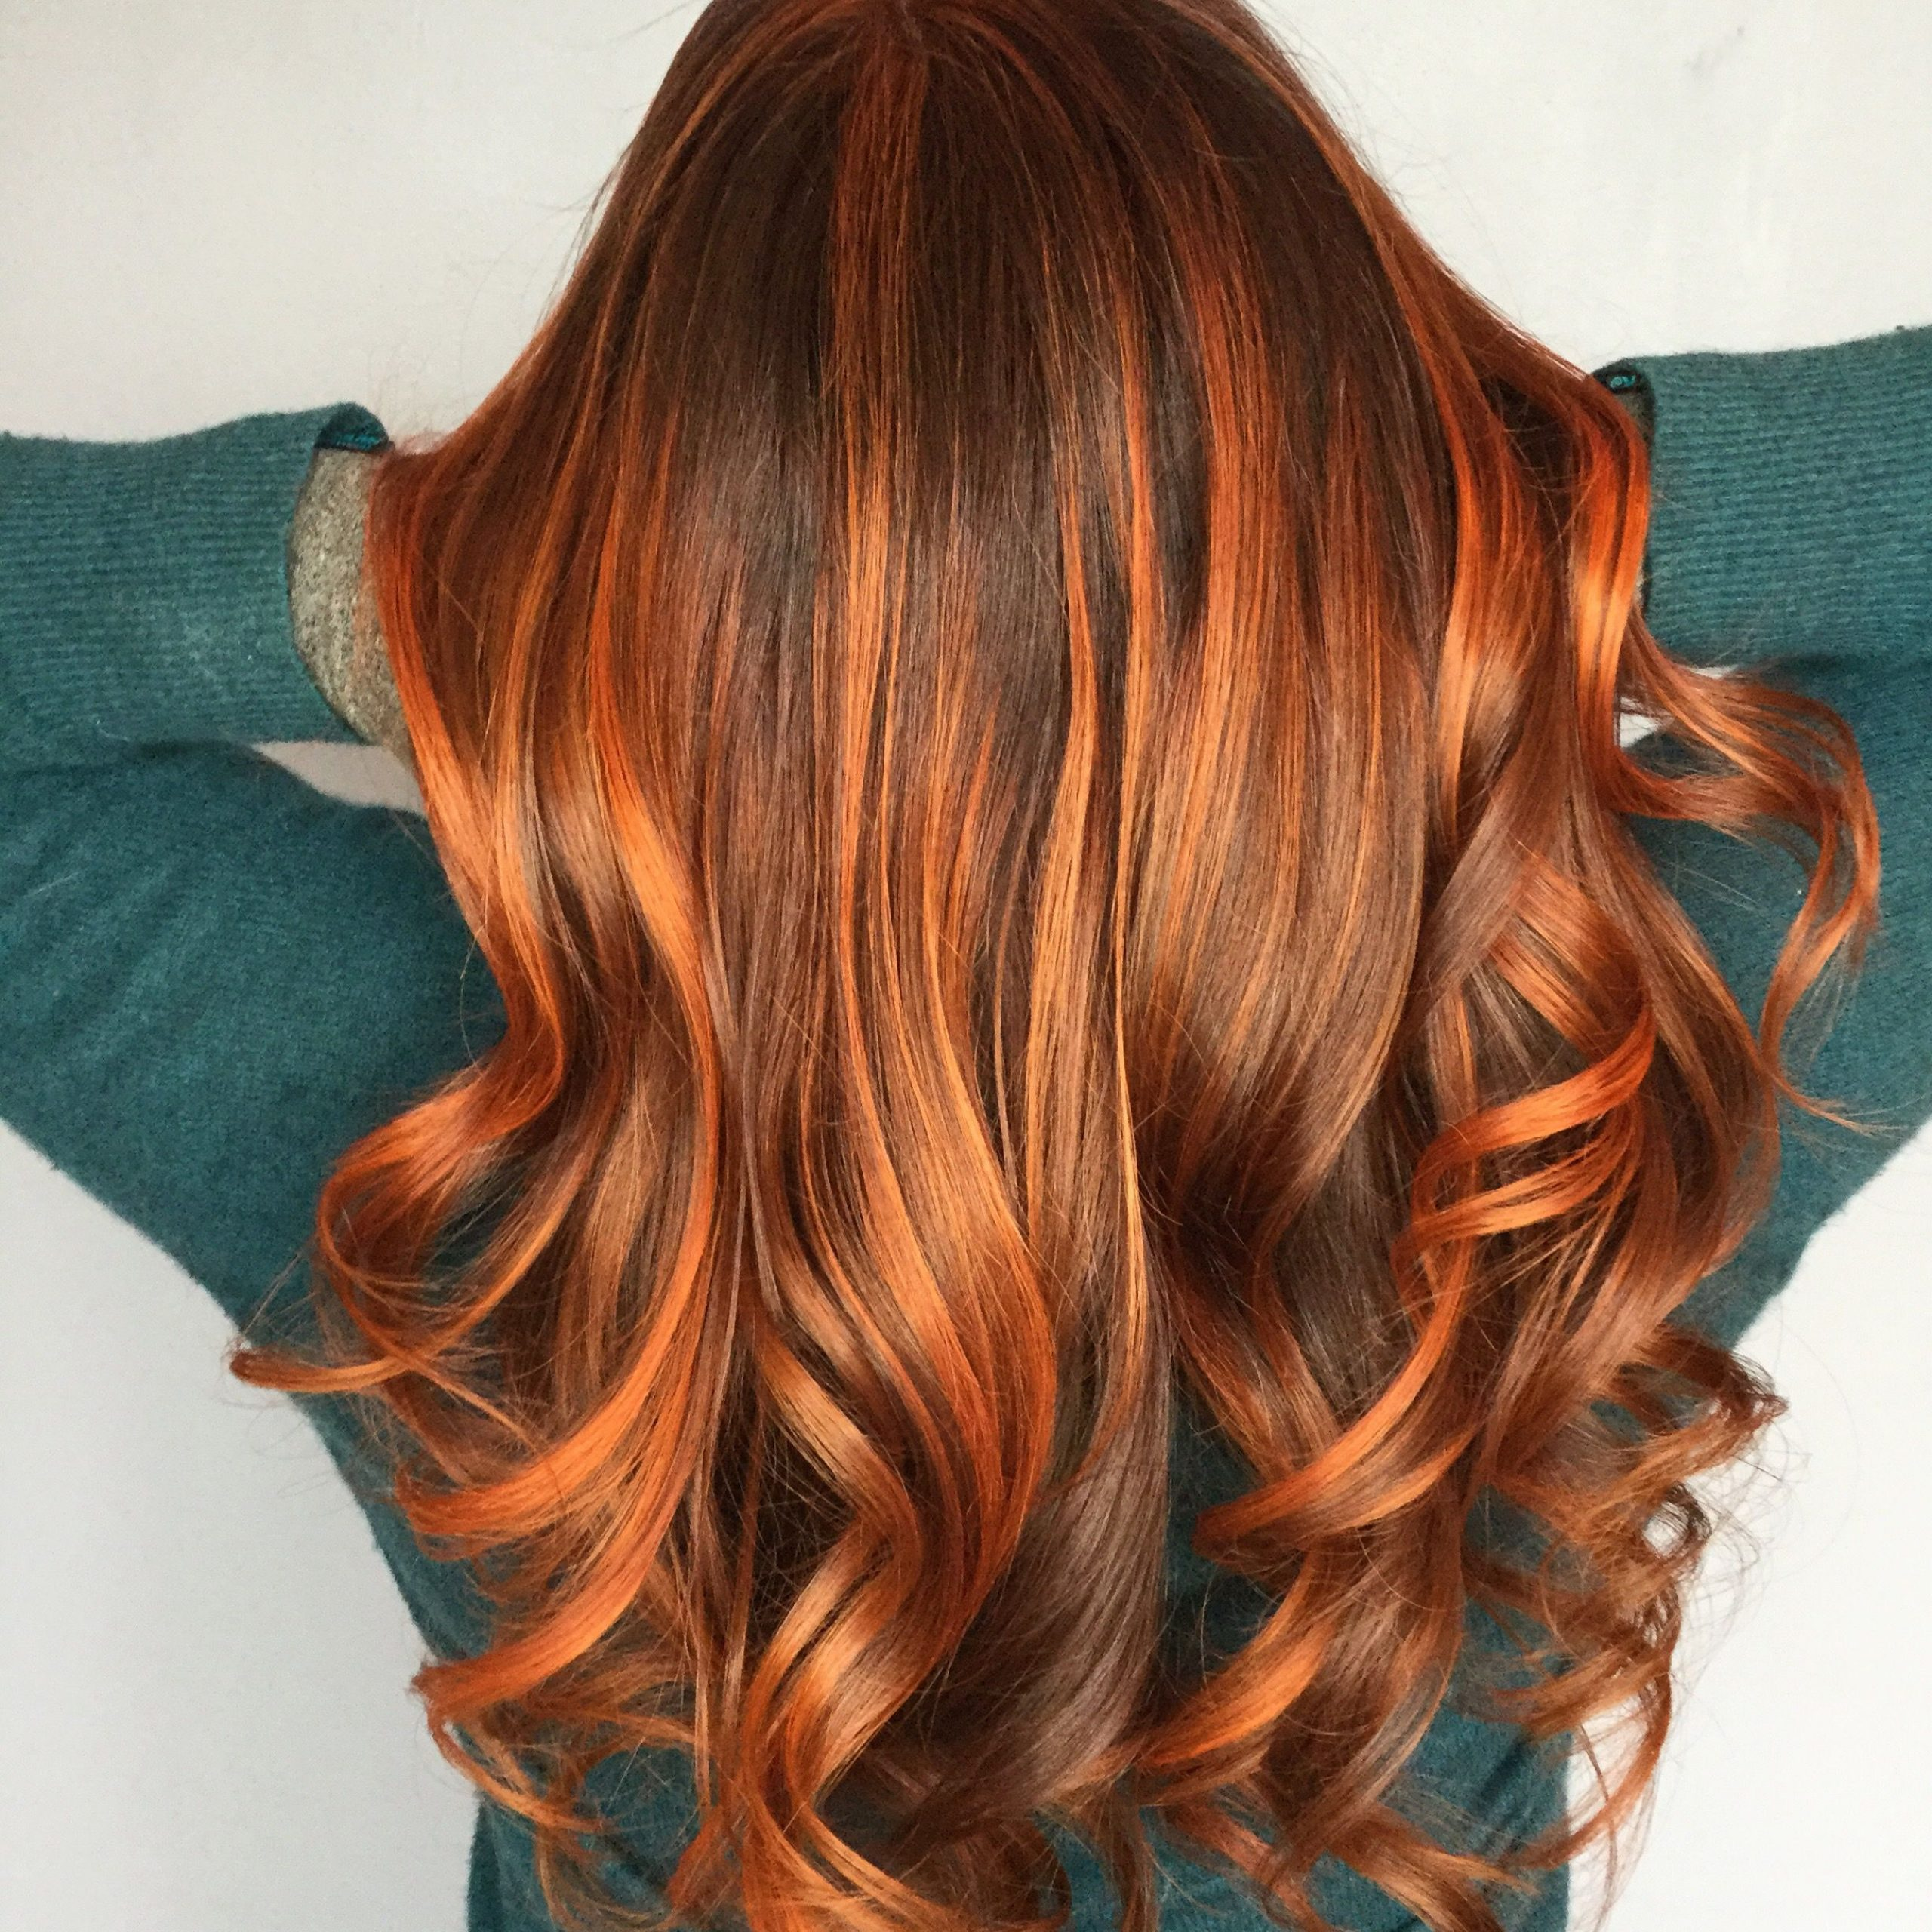 Latest Copper Curls Balayage Hairstyles Pertaining To Copper Melted Balayage #balayage #columbiamo #matrixcolor (View 12 of 20)